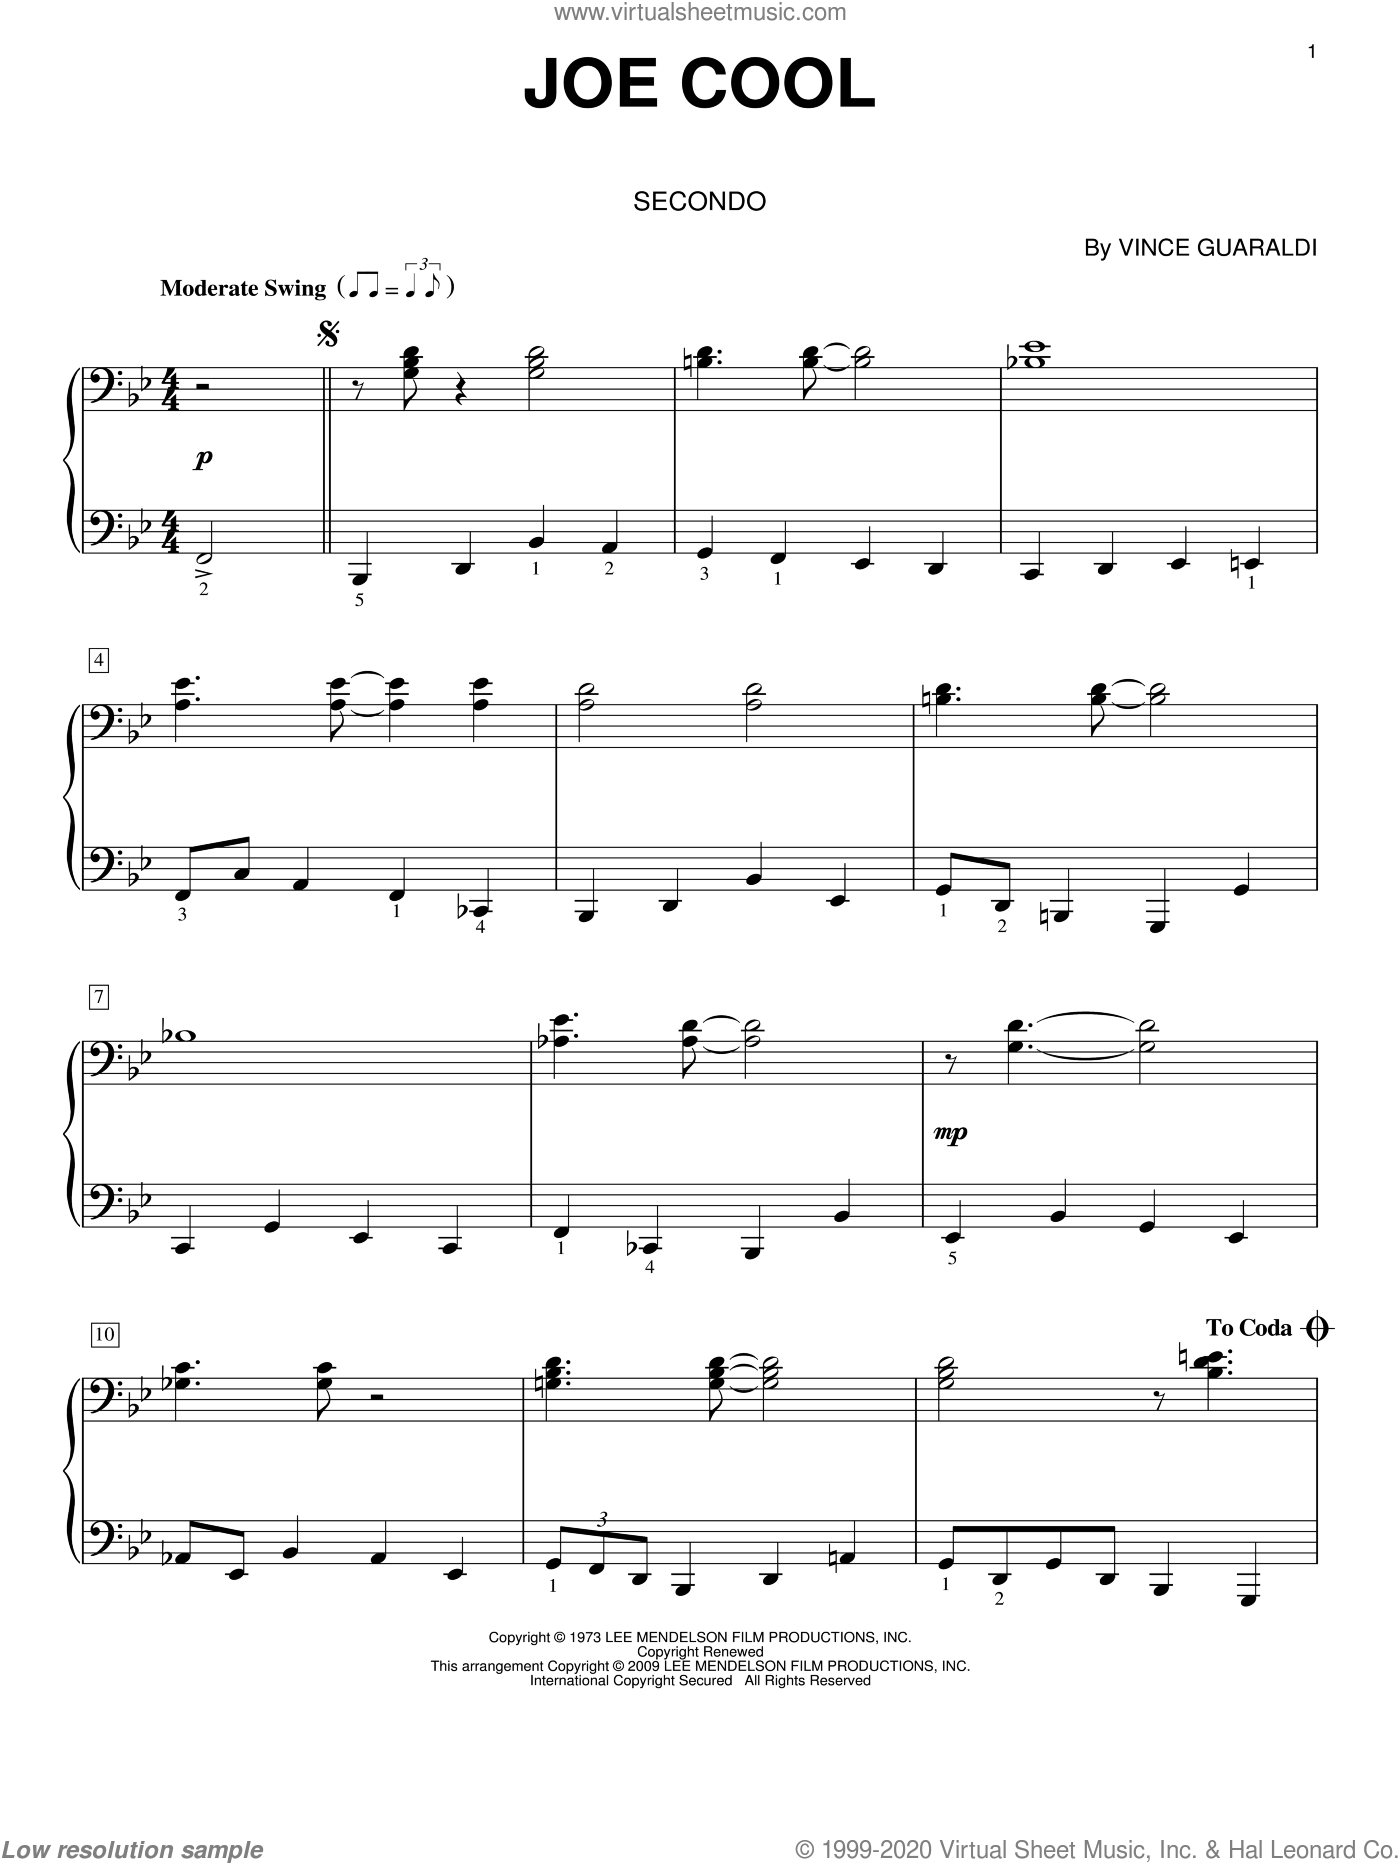 Joe Cool sheet music for piano four hands (duets) by Vince Guaraldi